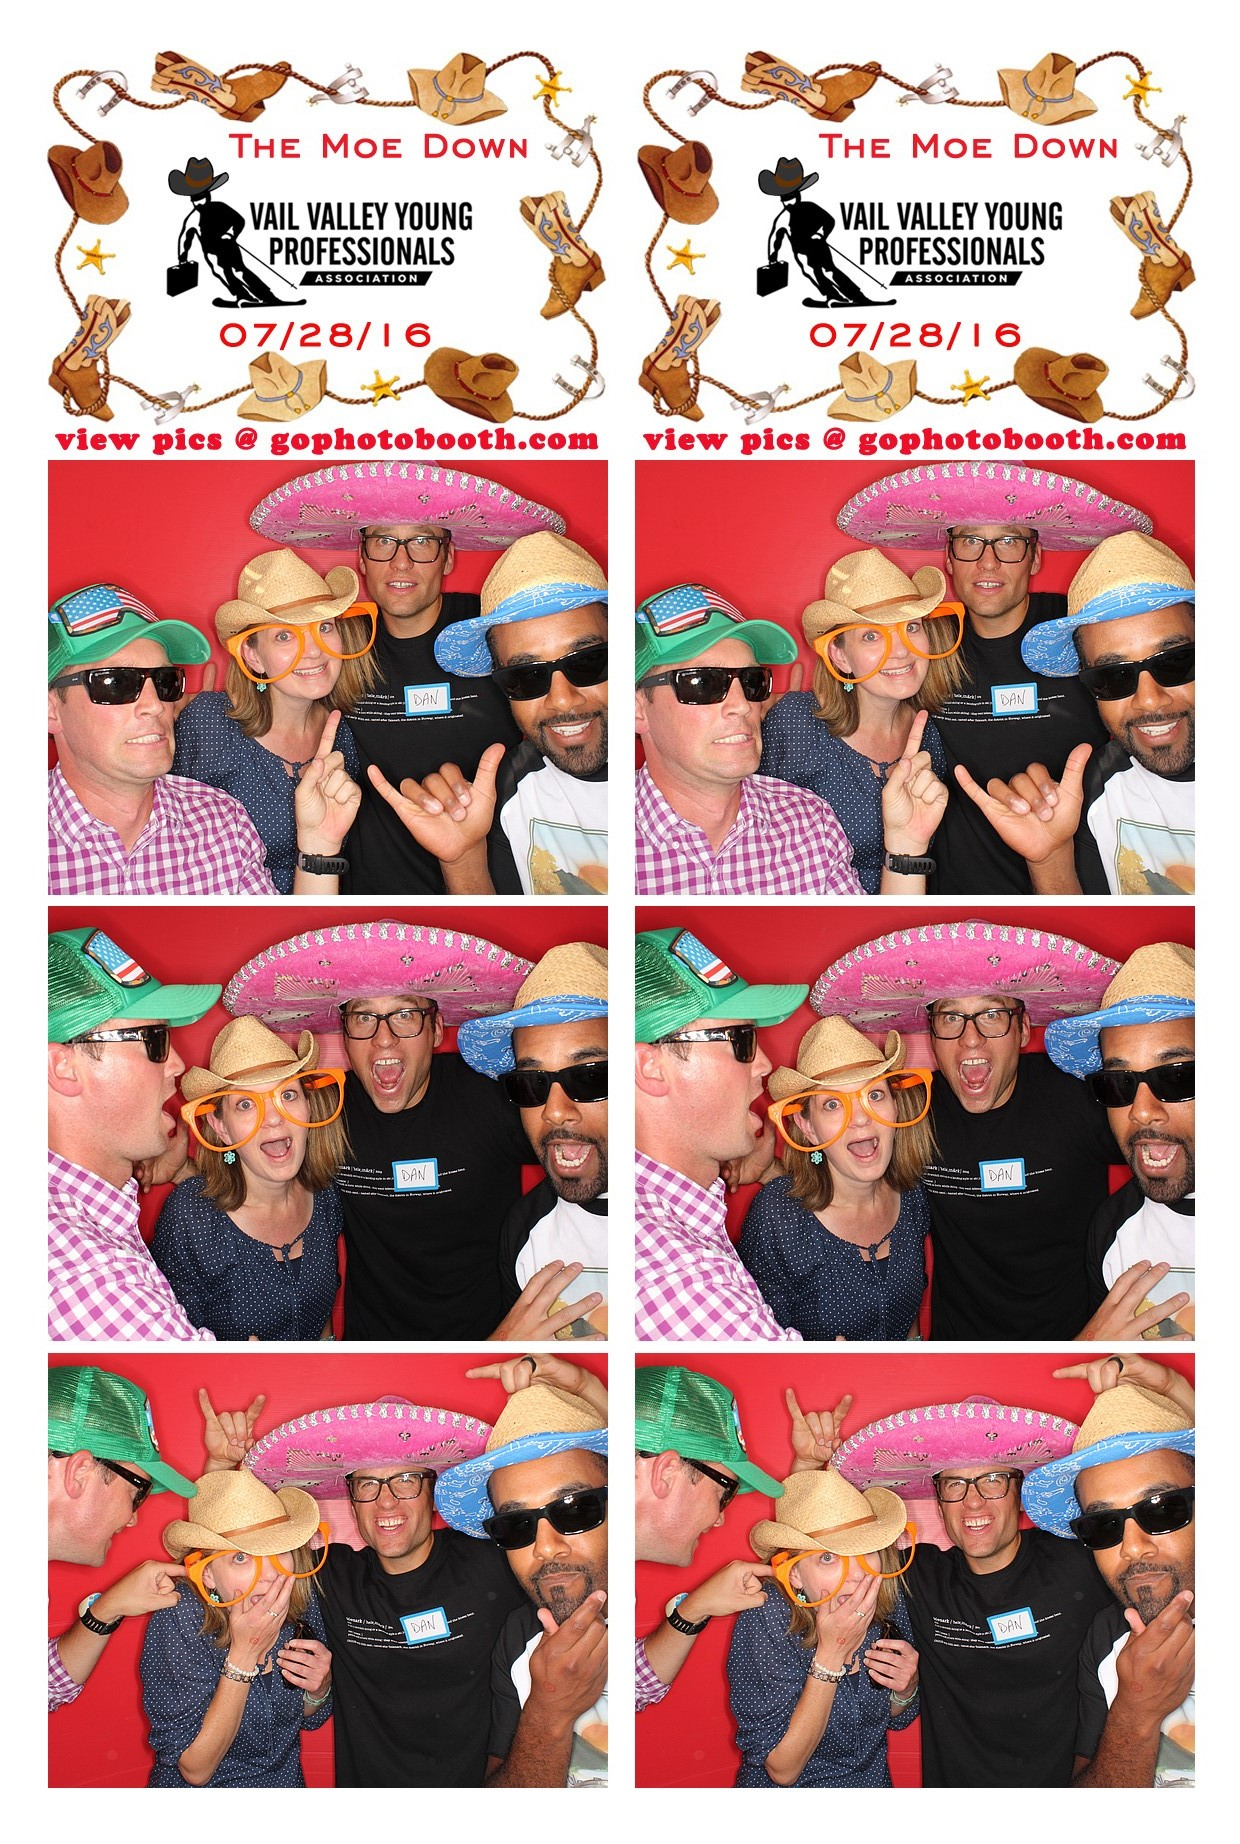 VVYPA Moedown photo booth 07/28/16